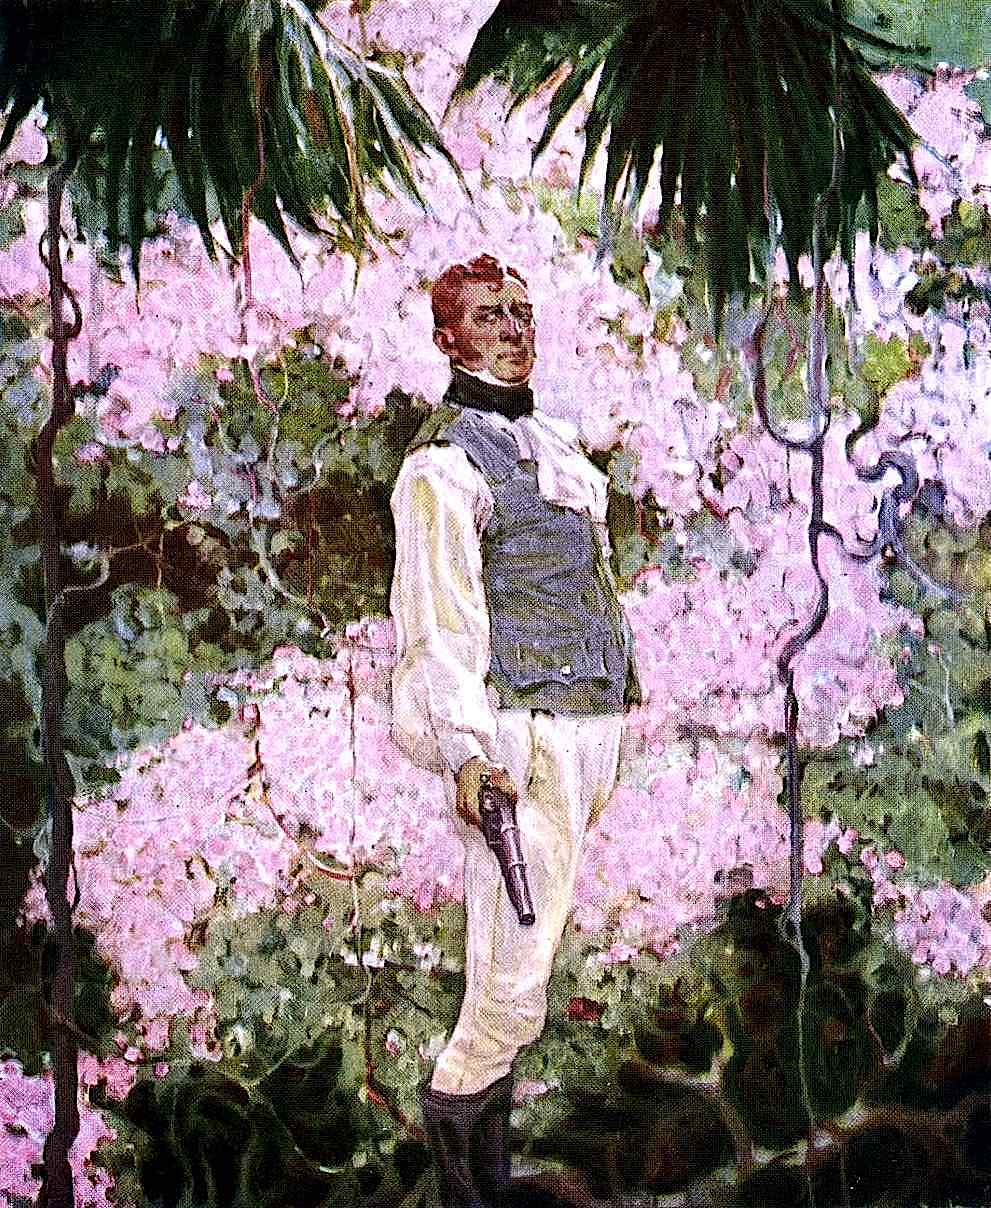 a Mead Schaeffer illustration of a good man duelling, with flowers in the background